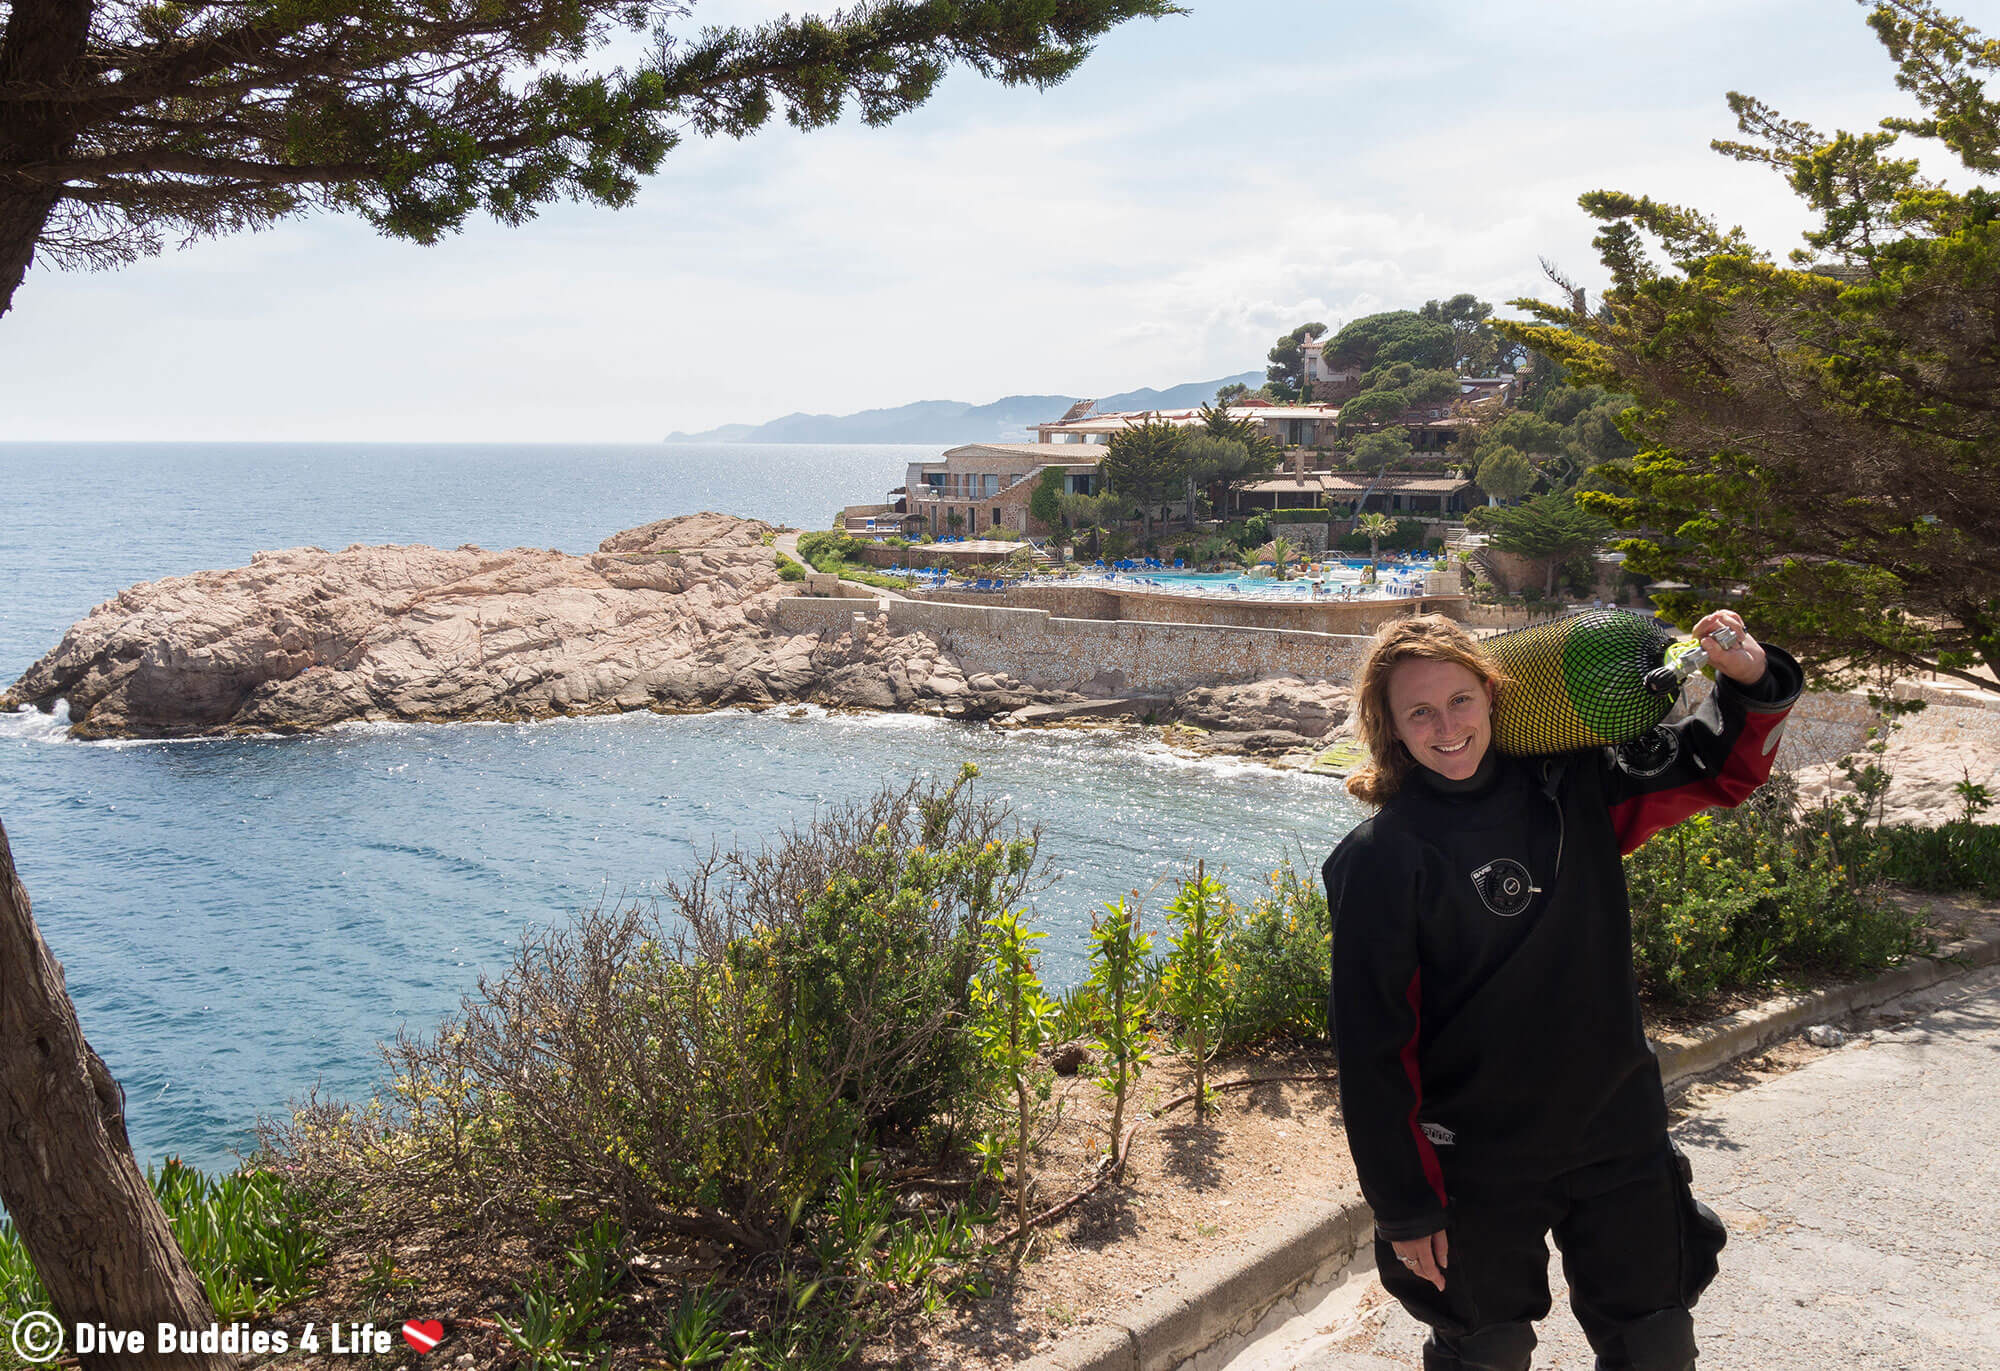 Ali Transporting A Scuba Diving Tank Down To The Shore Diving Site In Costa Brava, Spain, Europe